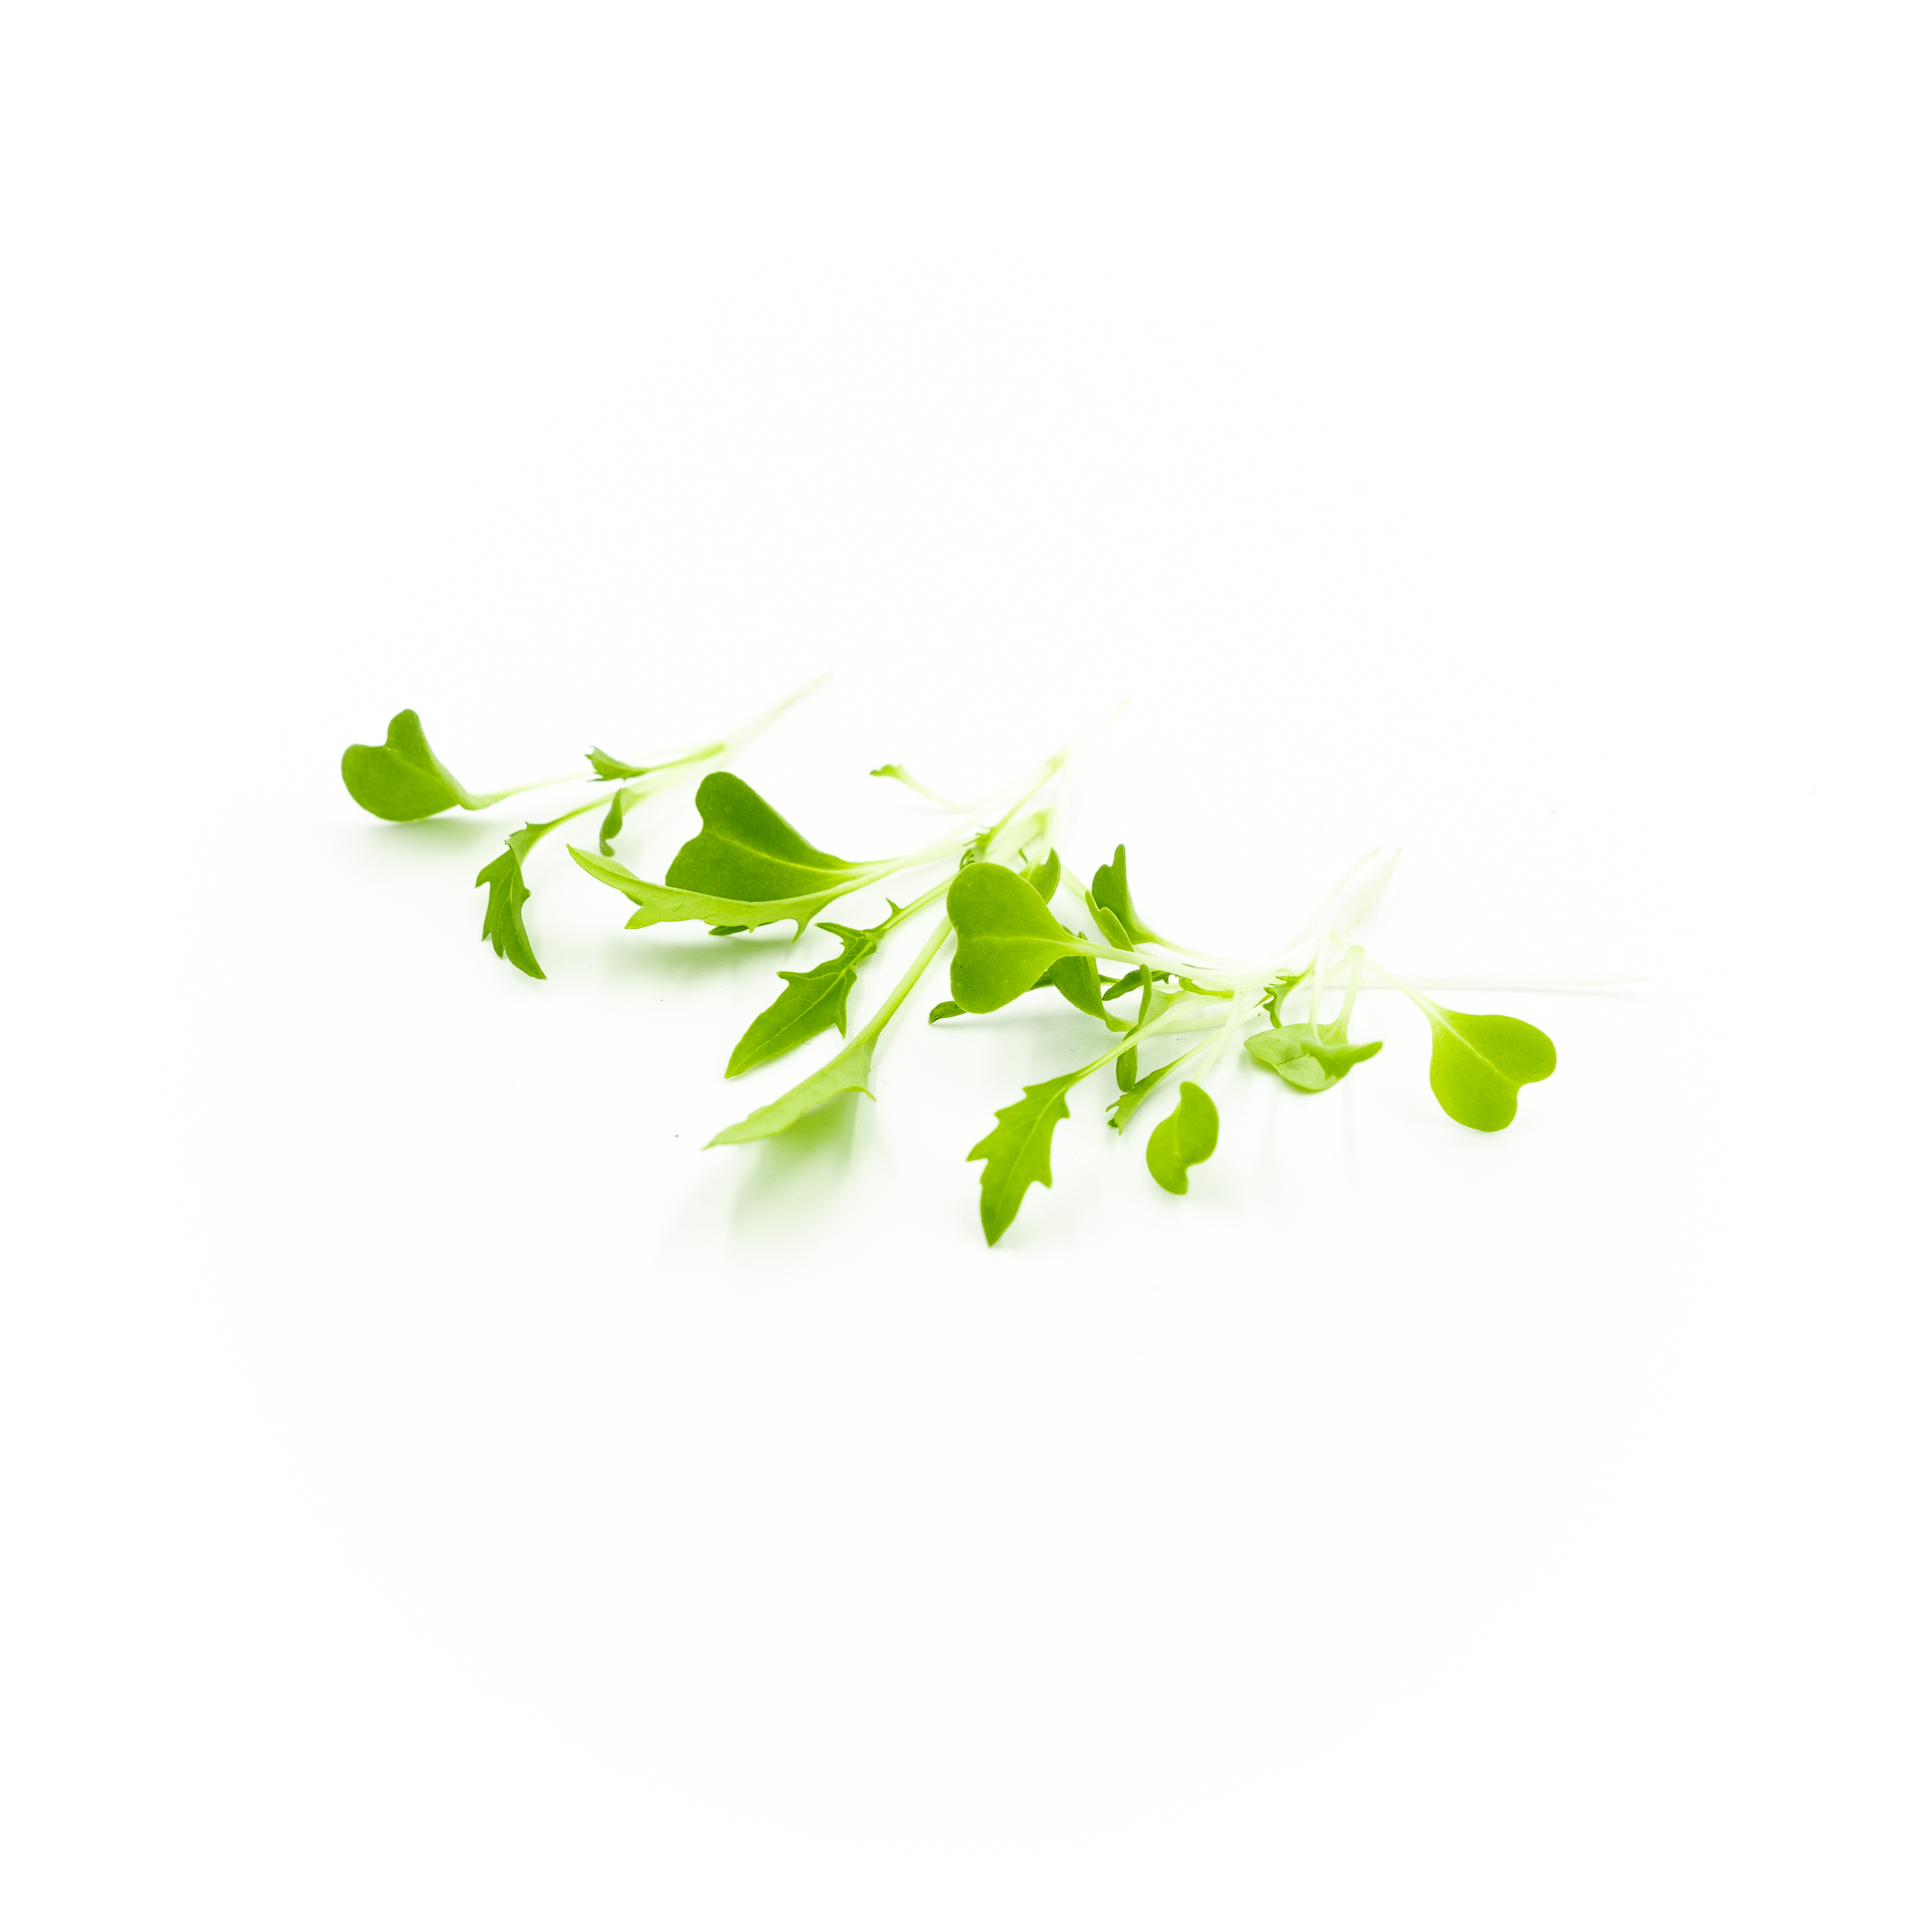 Mild mustard and peppery flavors in bright green leaves with whiter stems